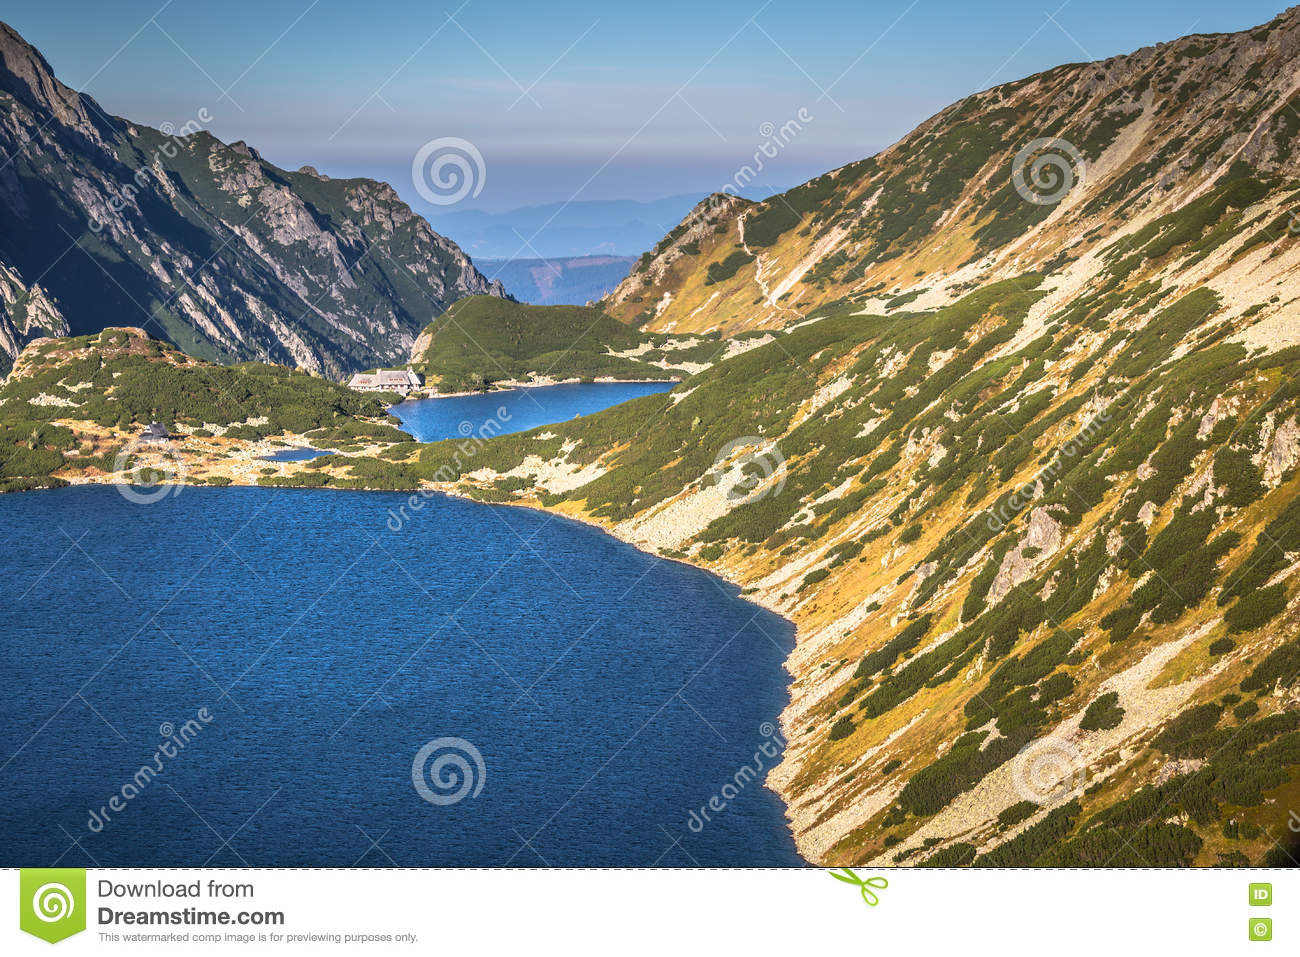 Trail to the valley of five ponds clipart #11